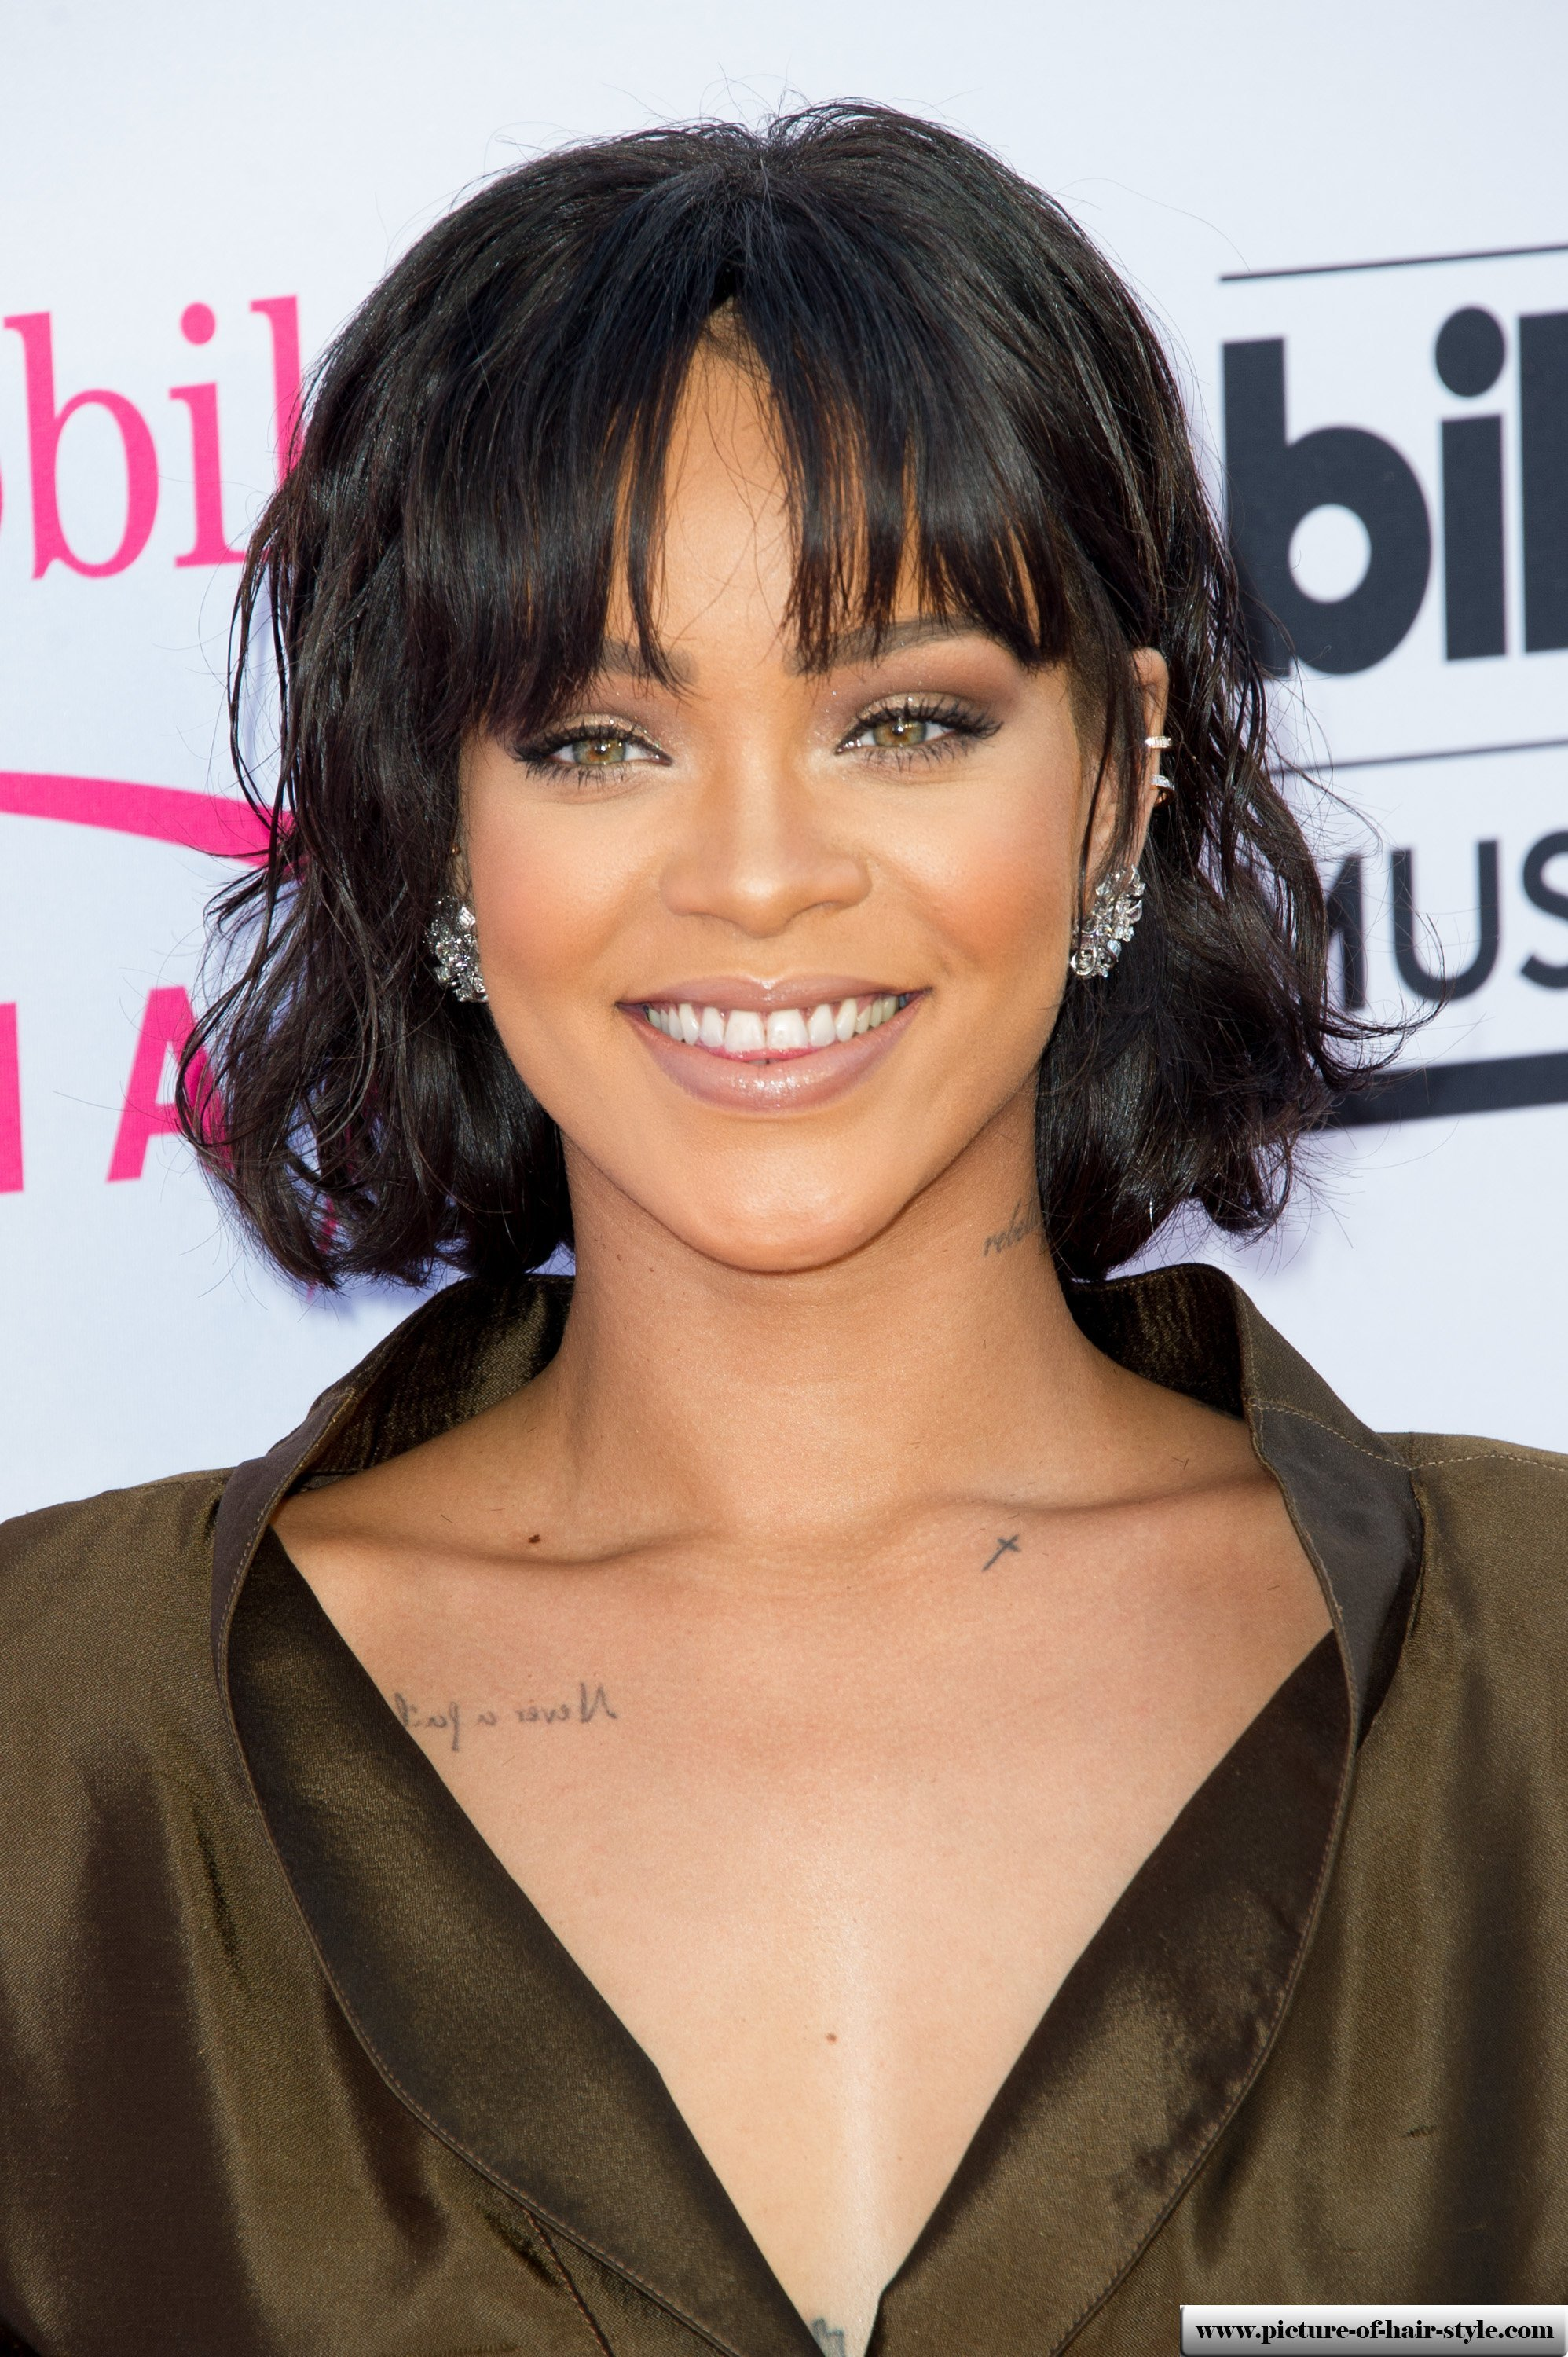 The Best Best Celebrity Bangs Hairstyles 2017 Hairdrome Com Pictures